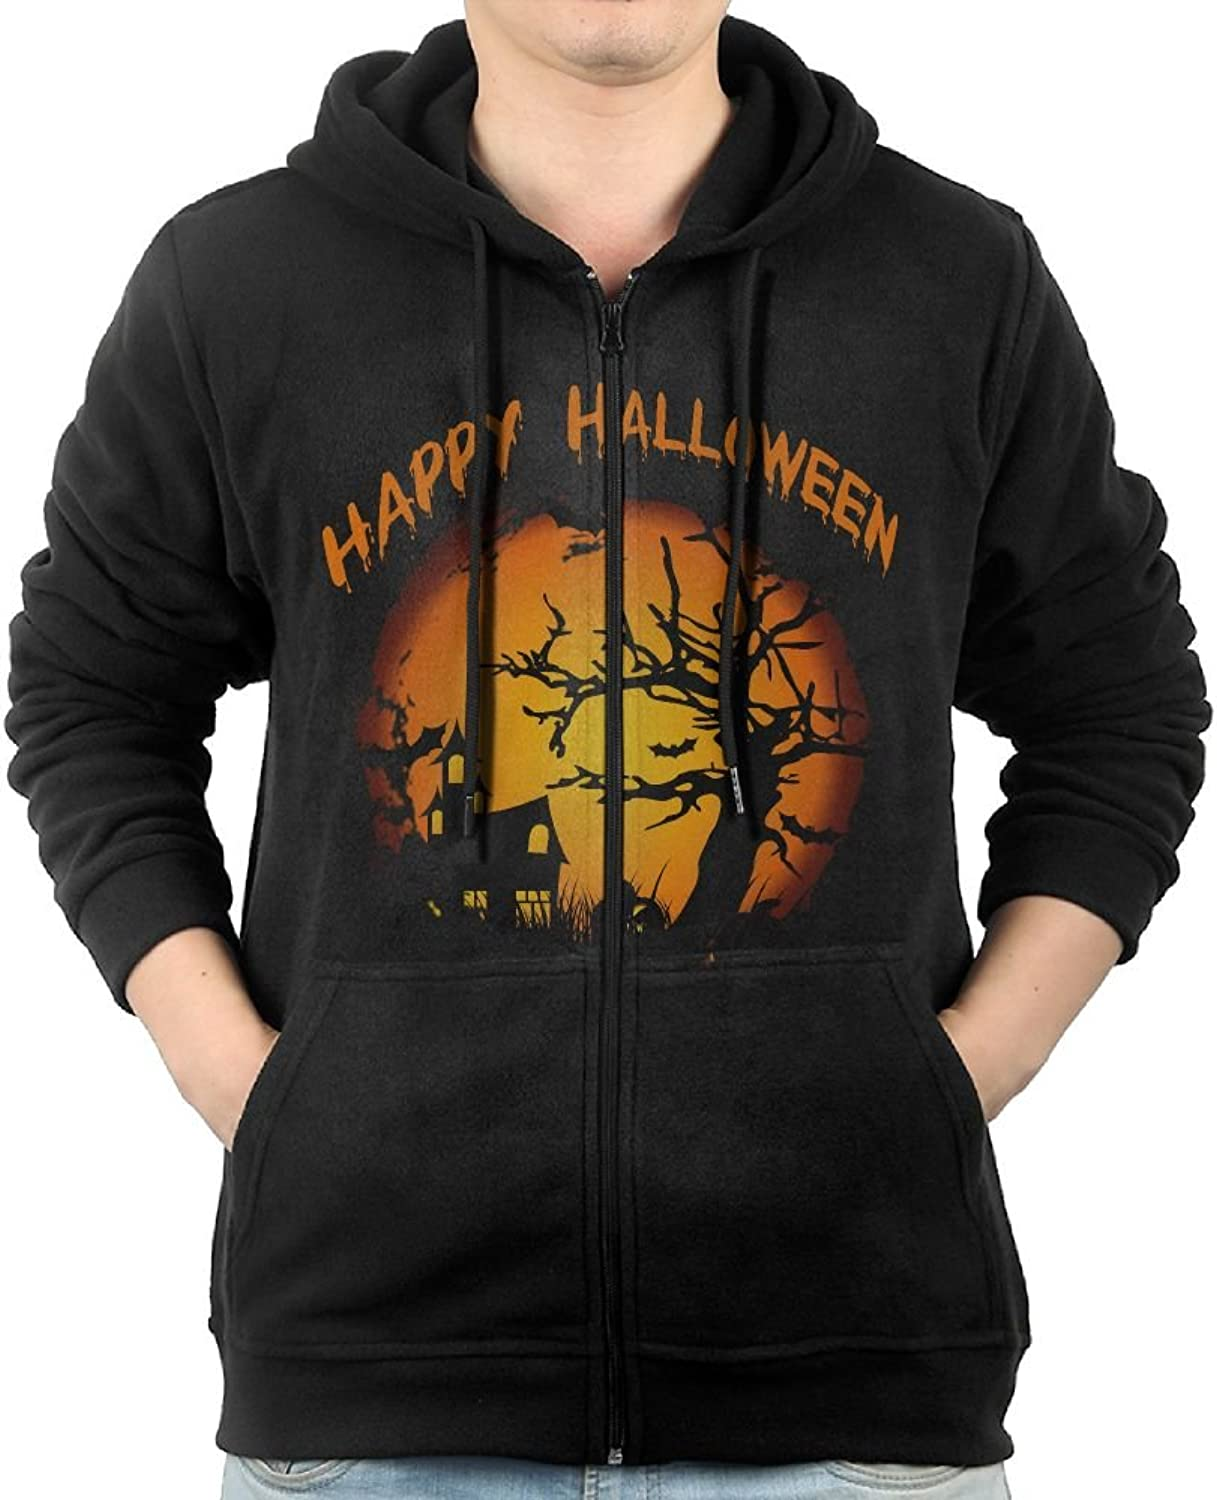 Happy Halloween Sweater Shirt Zipper Jacket Breathable Hoodie For Mens Fit Jogging Black